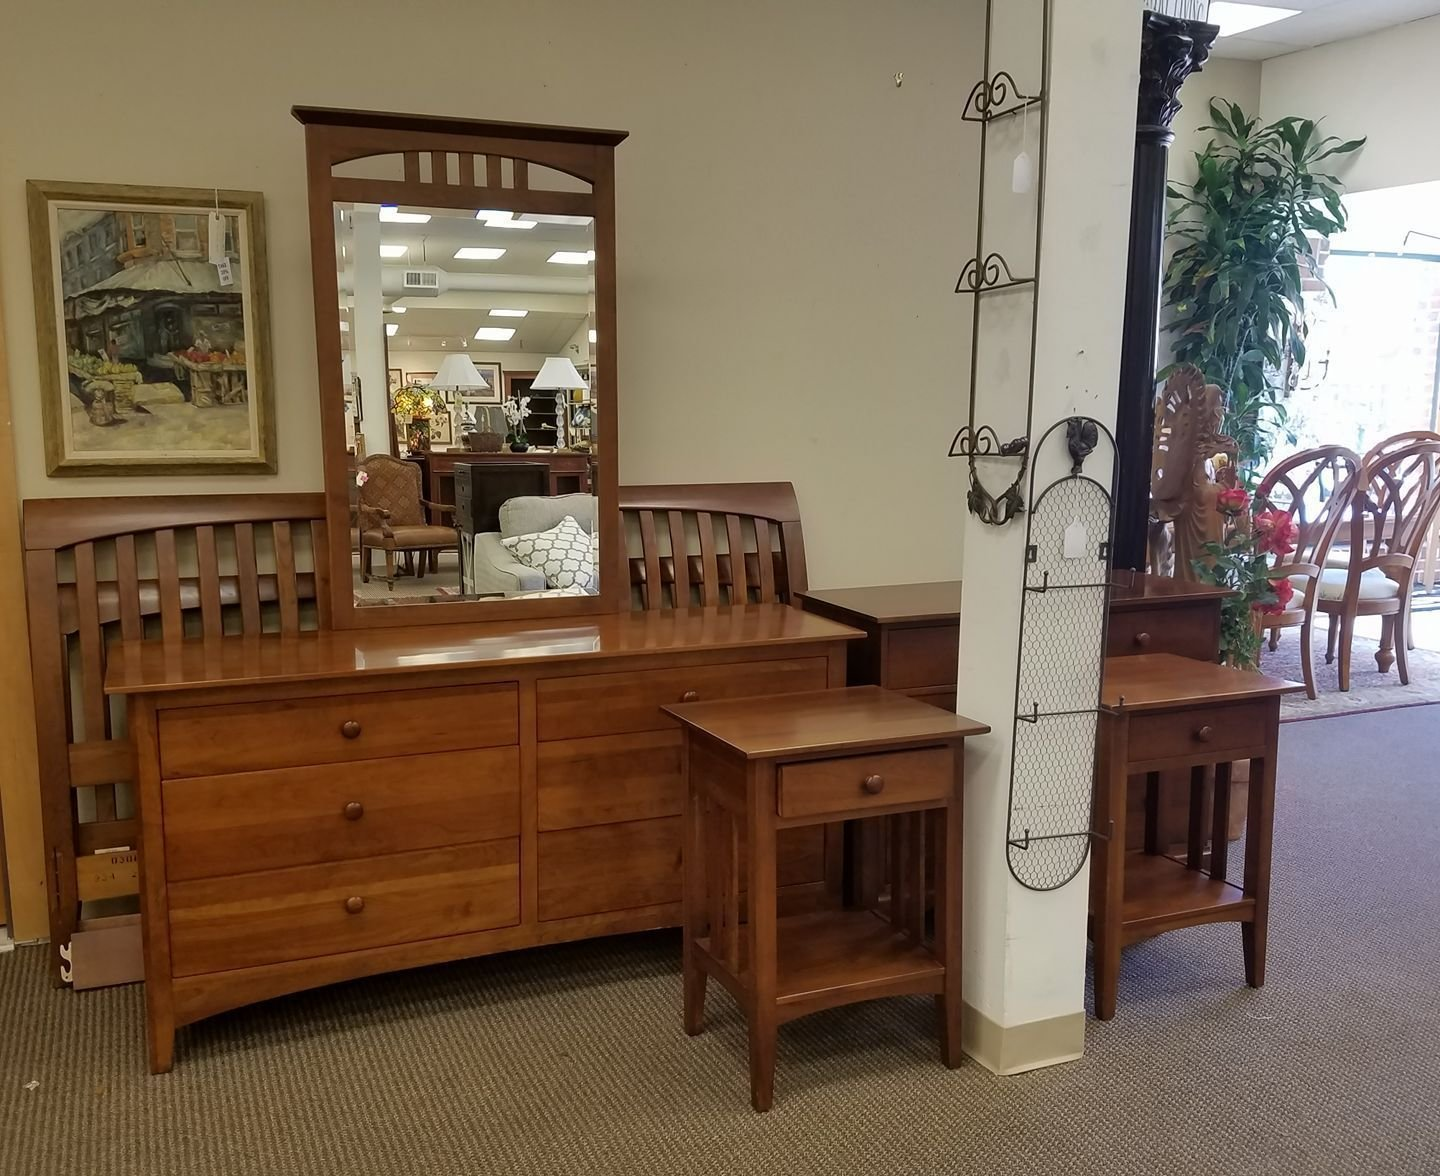 Best This Ethan Allen American Impressions Bedroom Set Is 1895 King Size Bedframe Dresser With With Pictures